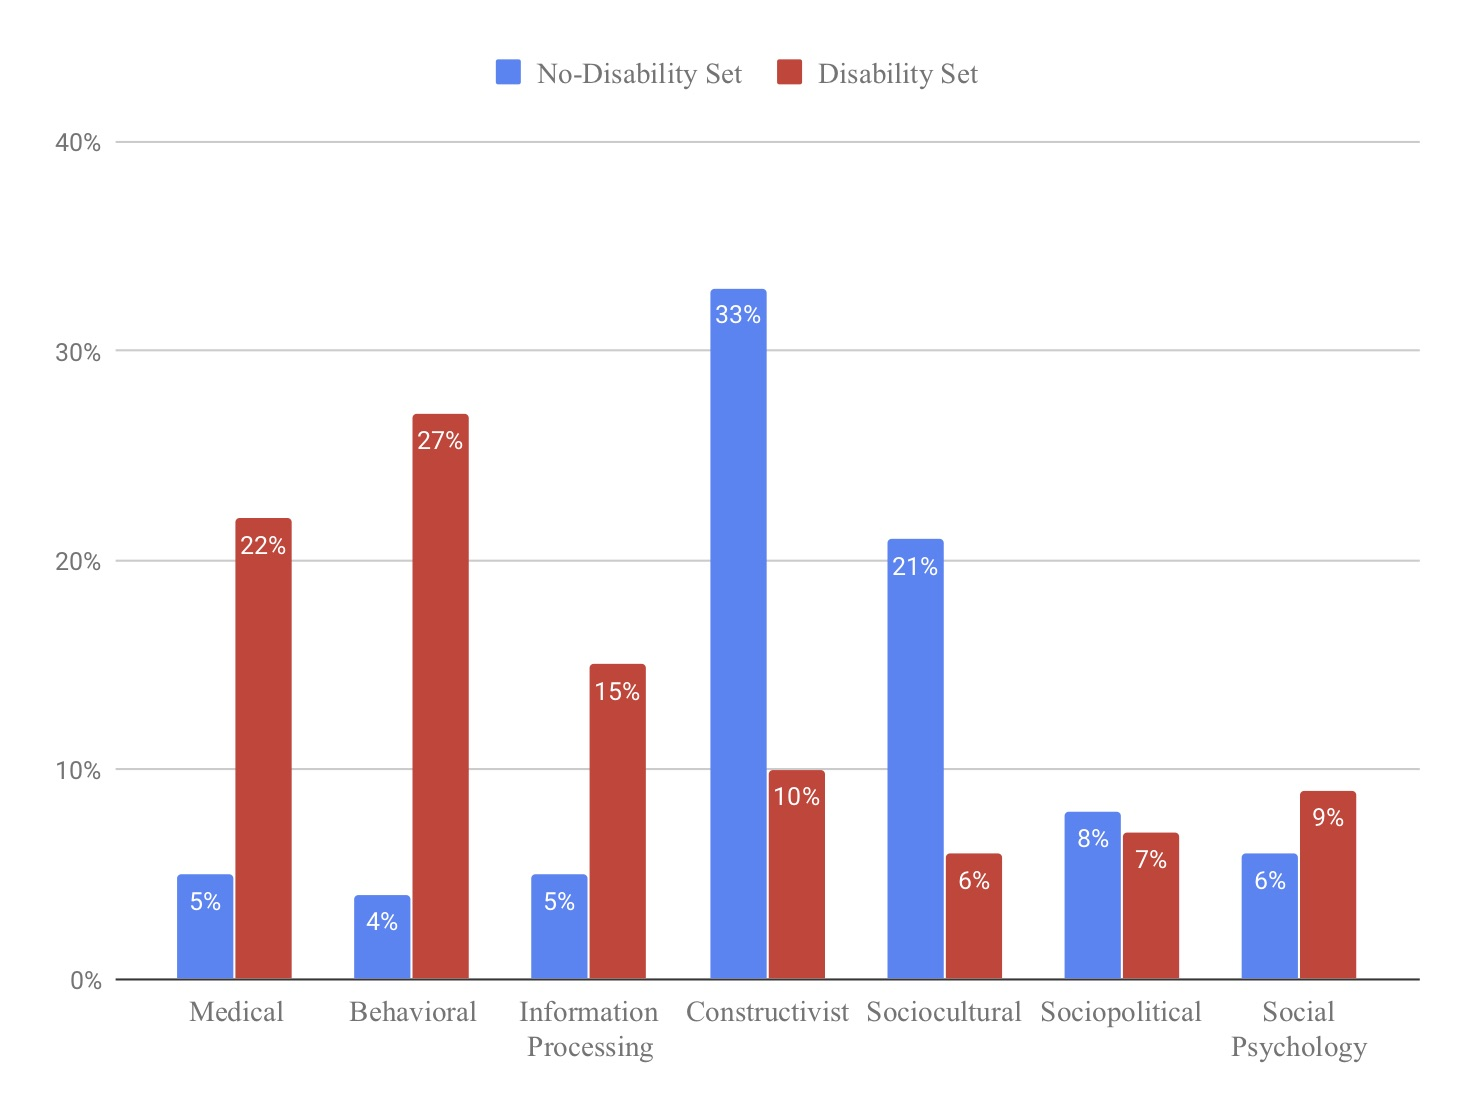 Graph on the percentage of articles in different theoretical categories. The No-Disability set was 5% medical, 4% behavioral, 5% information processing, 33% constructivist, 21% sociocultural, 8% sociopolitical, and 6% social psychology. Disability set was 22% medical, 27% behvaioral, 15% Information Processing, 10% constructivist, 6% sociocultural, 7% sociopolitical, and 9% social psychology.